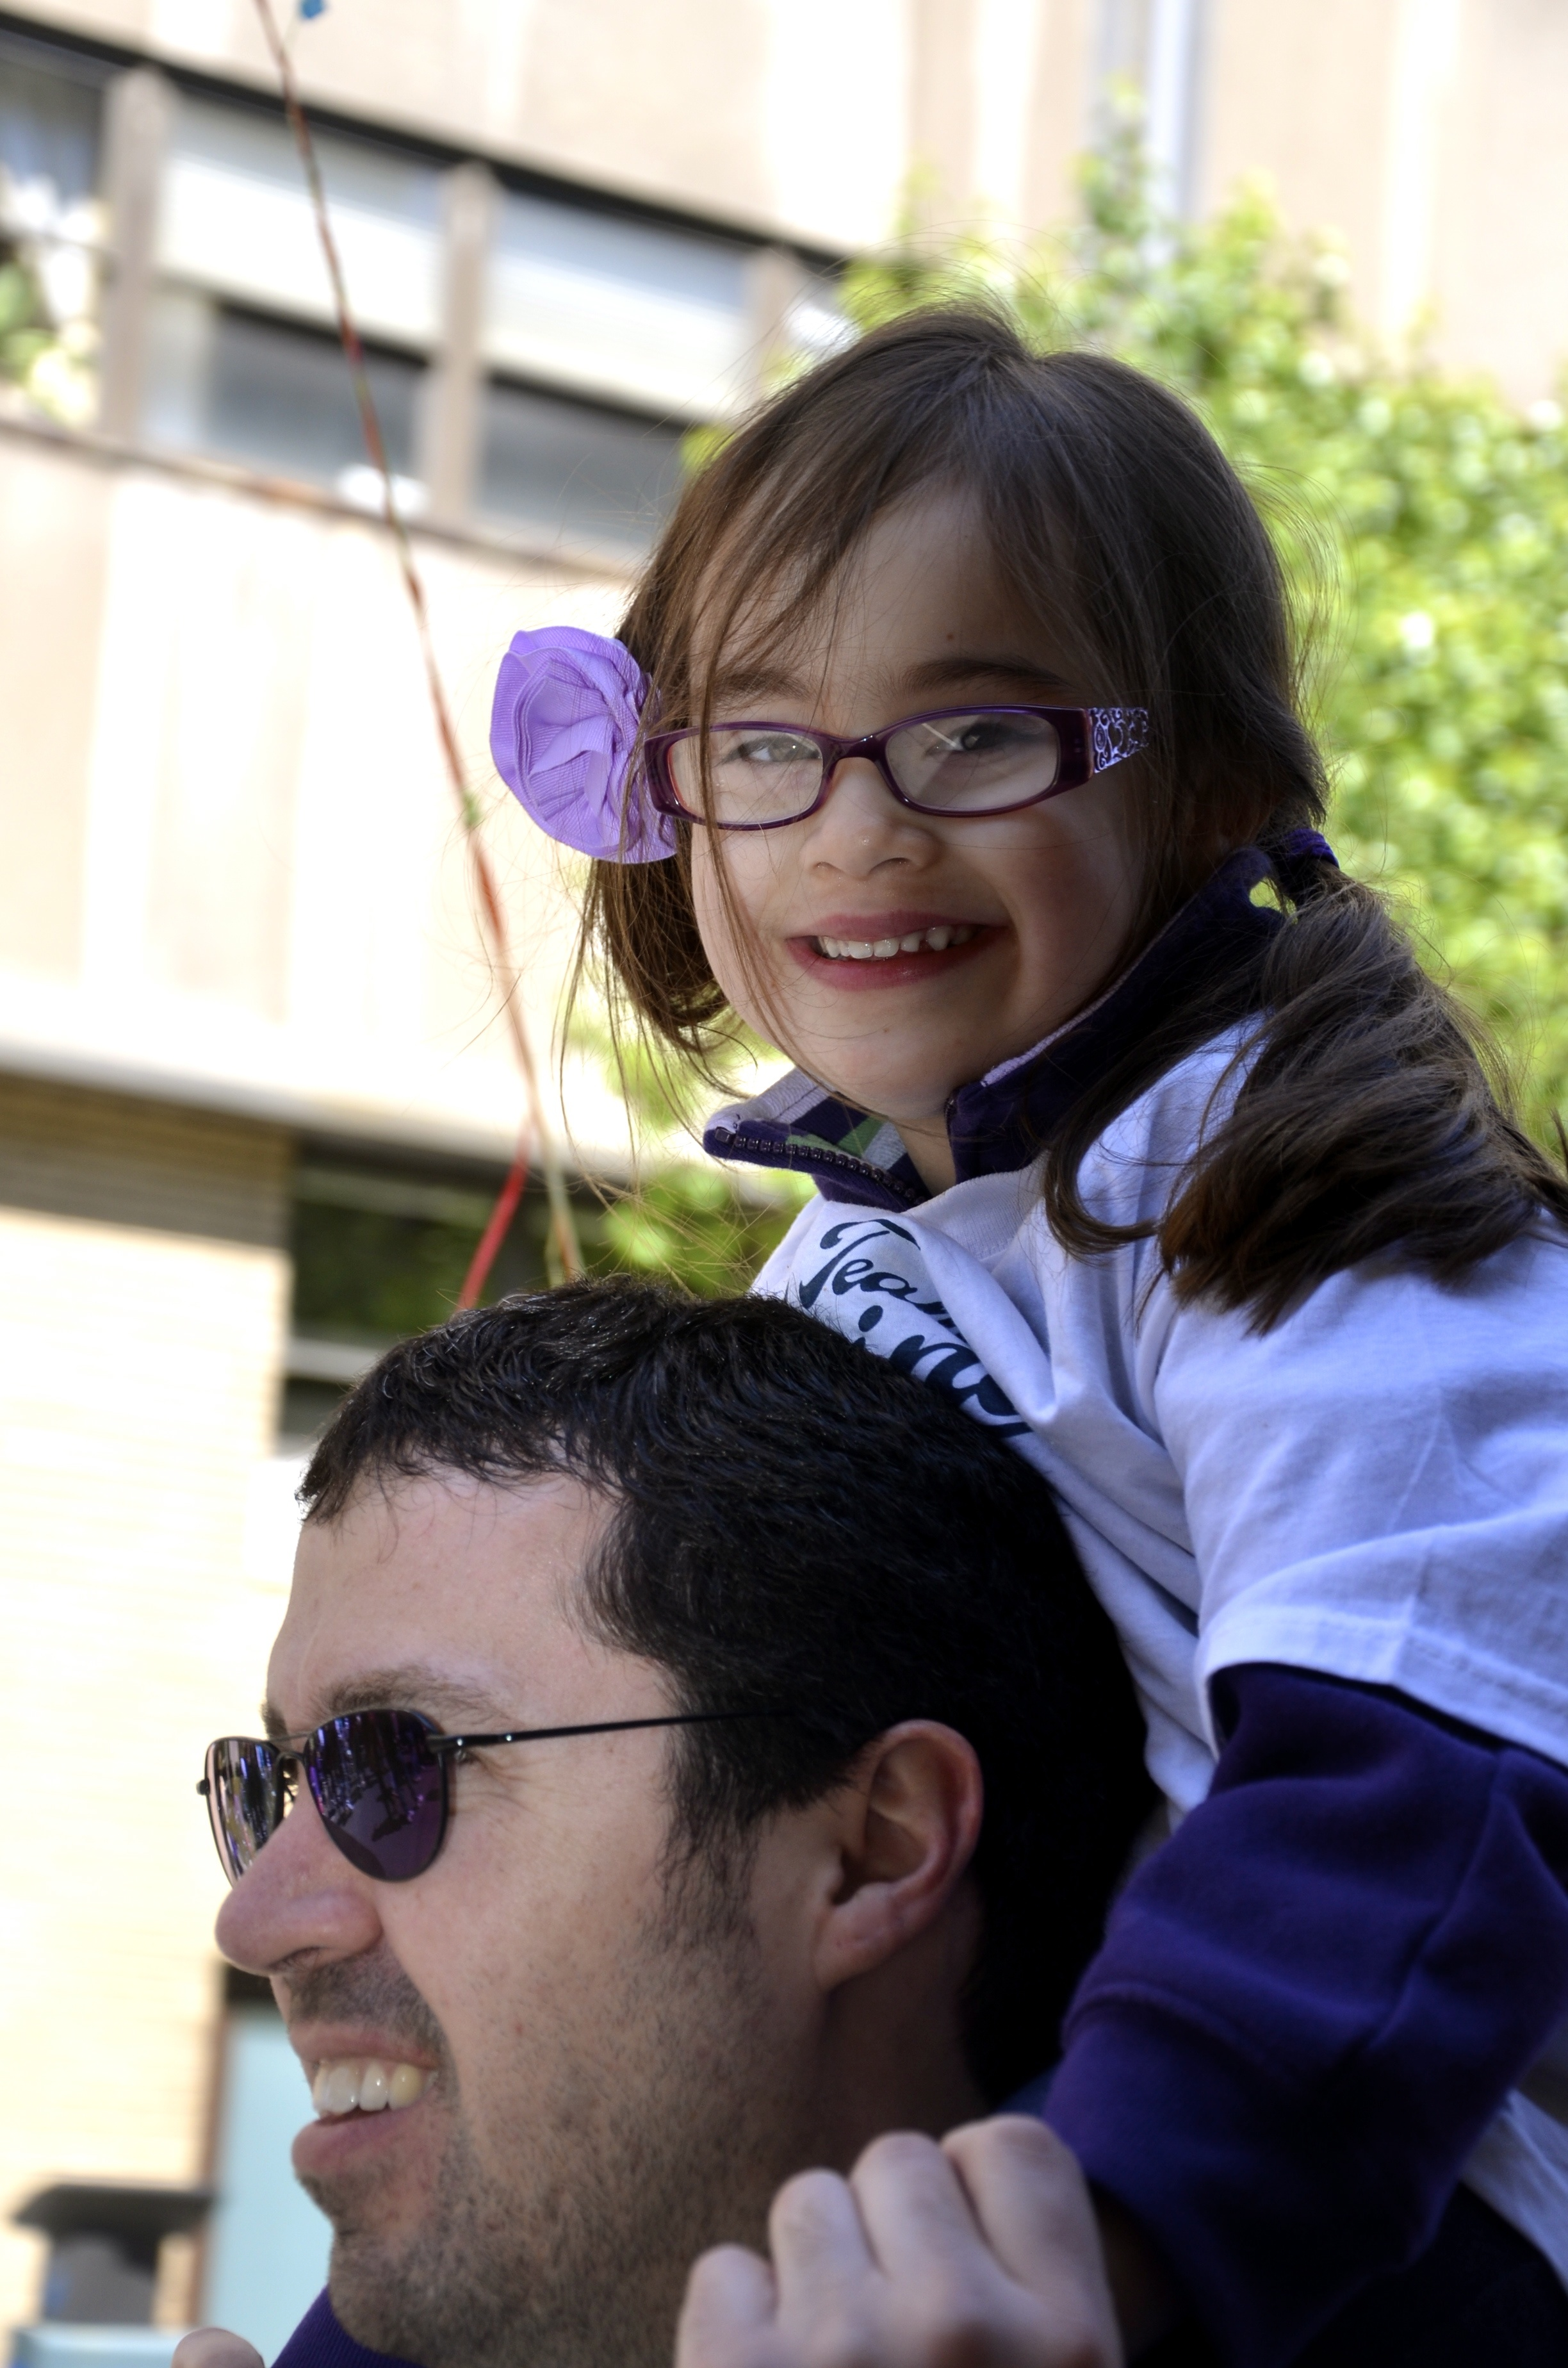 josh--olivia-levine-at-the-2012-march-for-babies-walk_8540258428_o.jpg